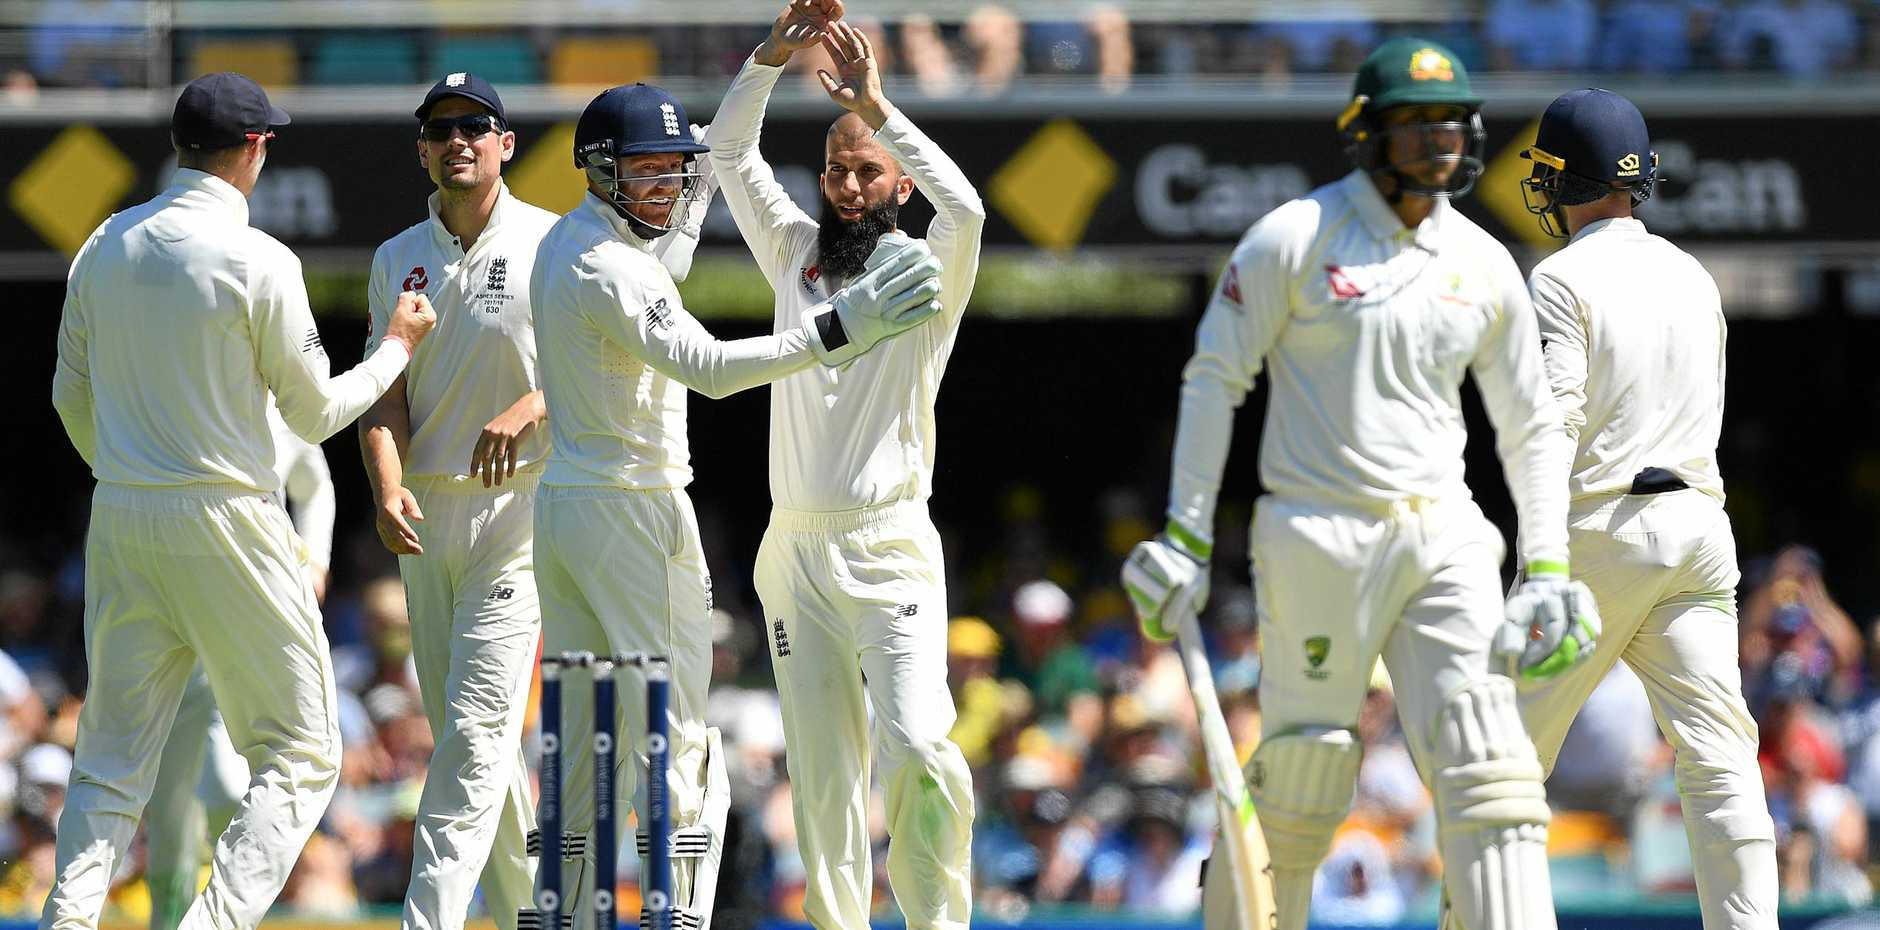 GOT HIM: Usman Khawaja is out again to off-spin, leg before to Moeen Ali (centre).